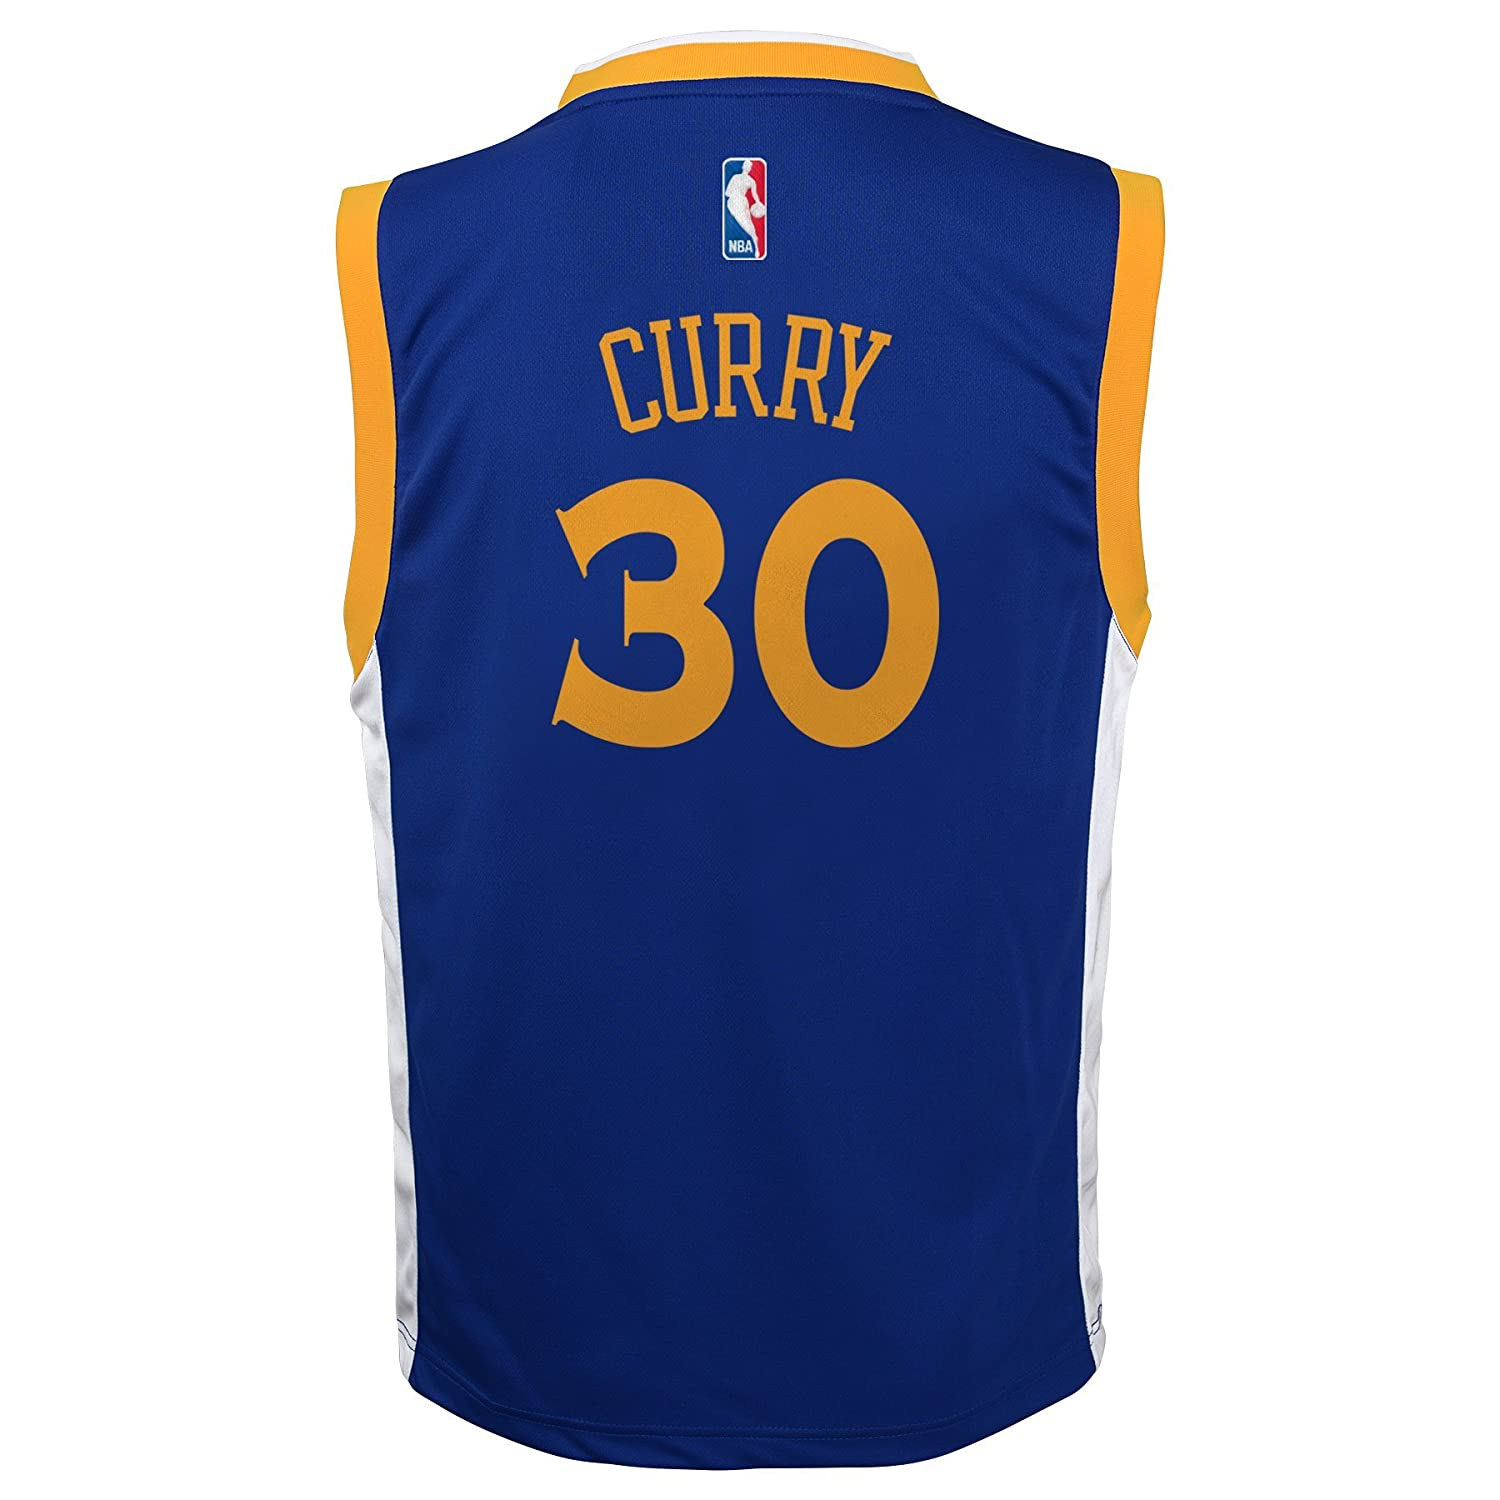 buy online 10905 a0793 NBA Golden State Warriors Curry S # 30 Boys 8-20 Replica Road Jersey